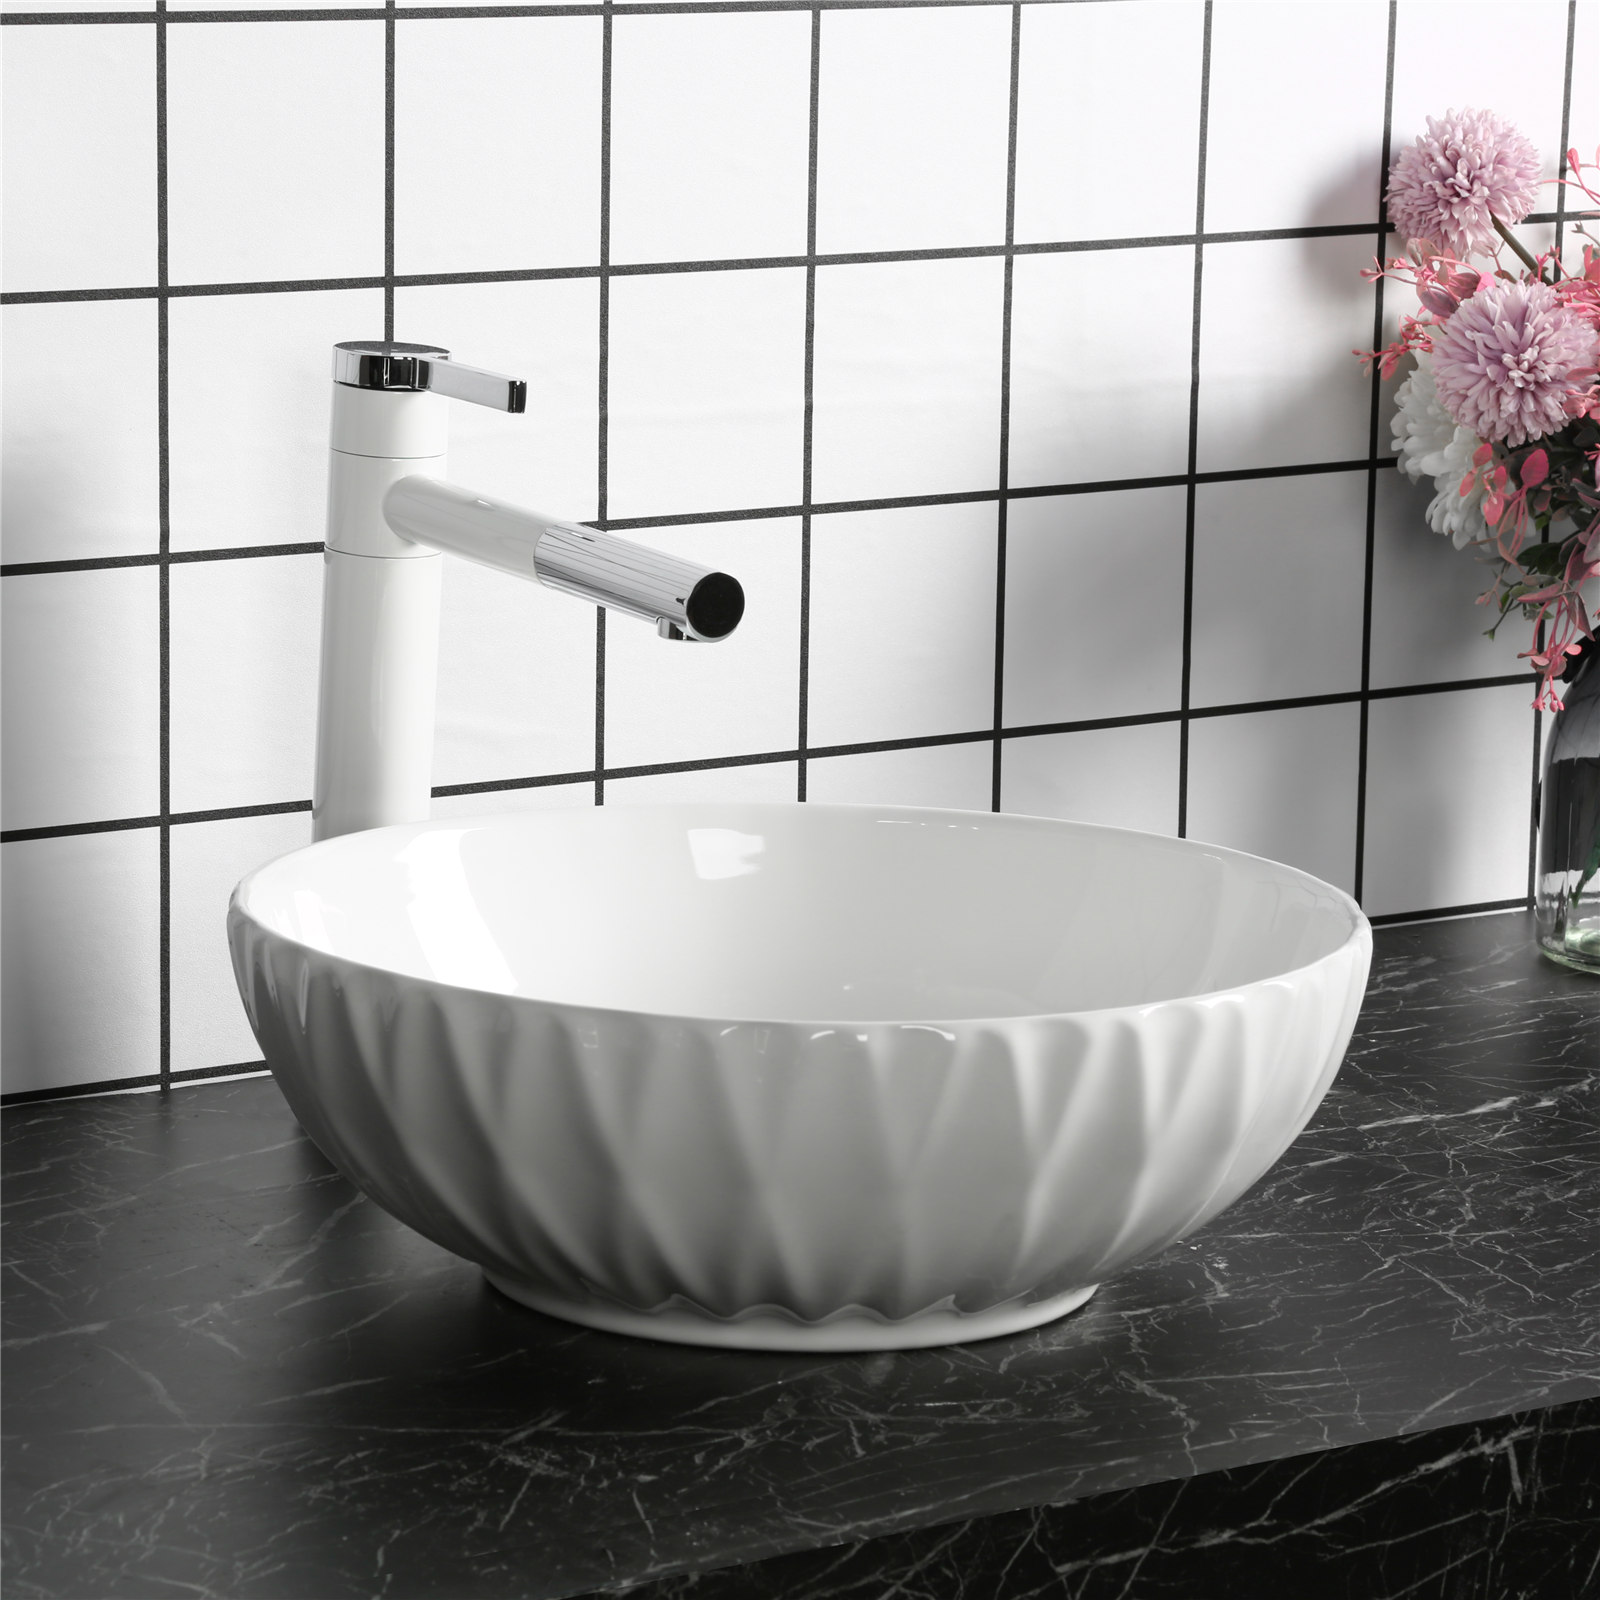 Walk-In Bathtubs - Pros and Cons